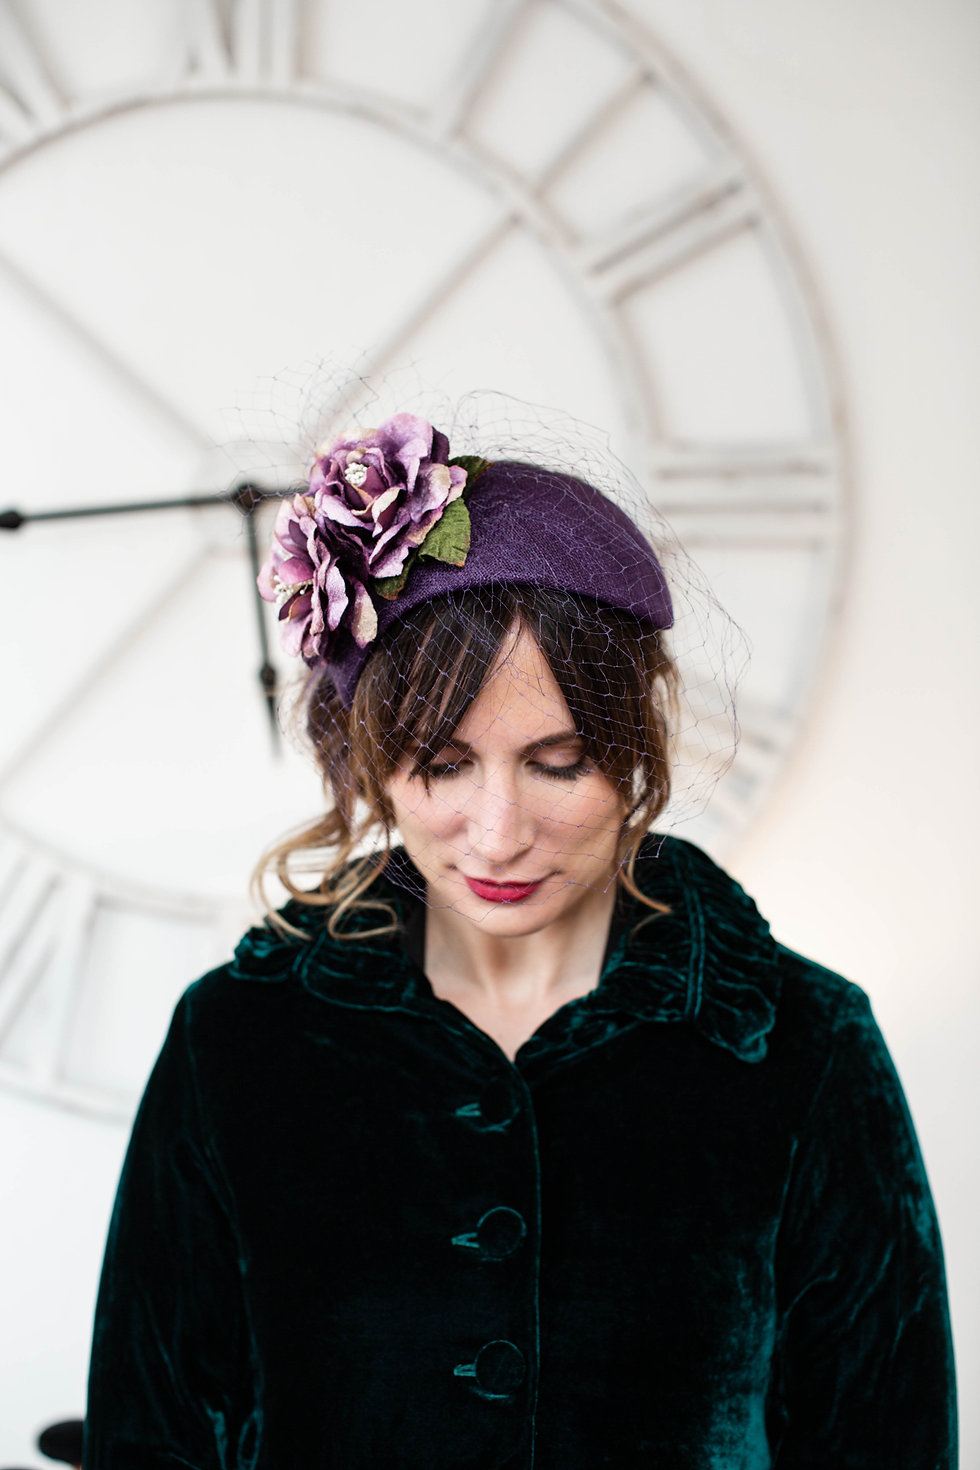 Exquisite wedding hats for sale and hire Bridal Headpieces Fabulous Ascot and Raceday hats  Millinery for sale Oxfordshire  Hats and Headpieces for sale and Hire  Oxfordshire Hats  Hats Oxfordshire Hat Hire Mother of the Bride Hats